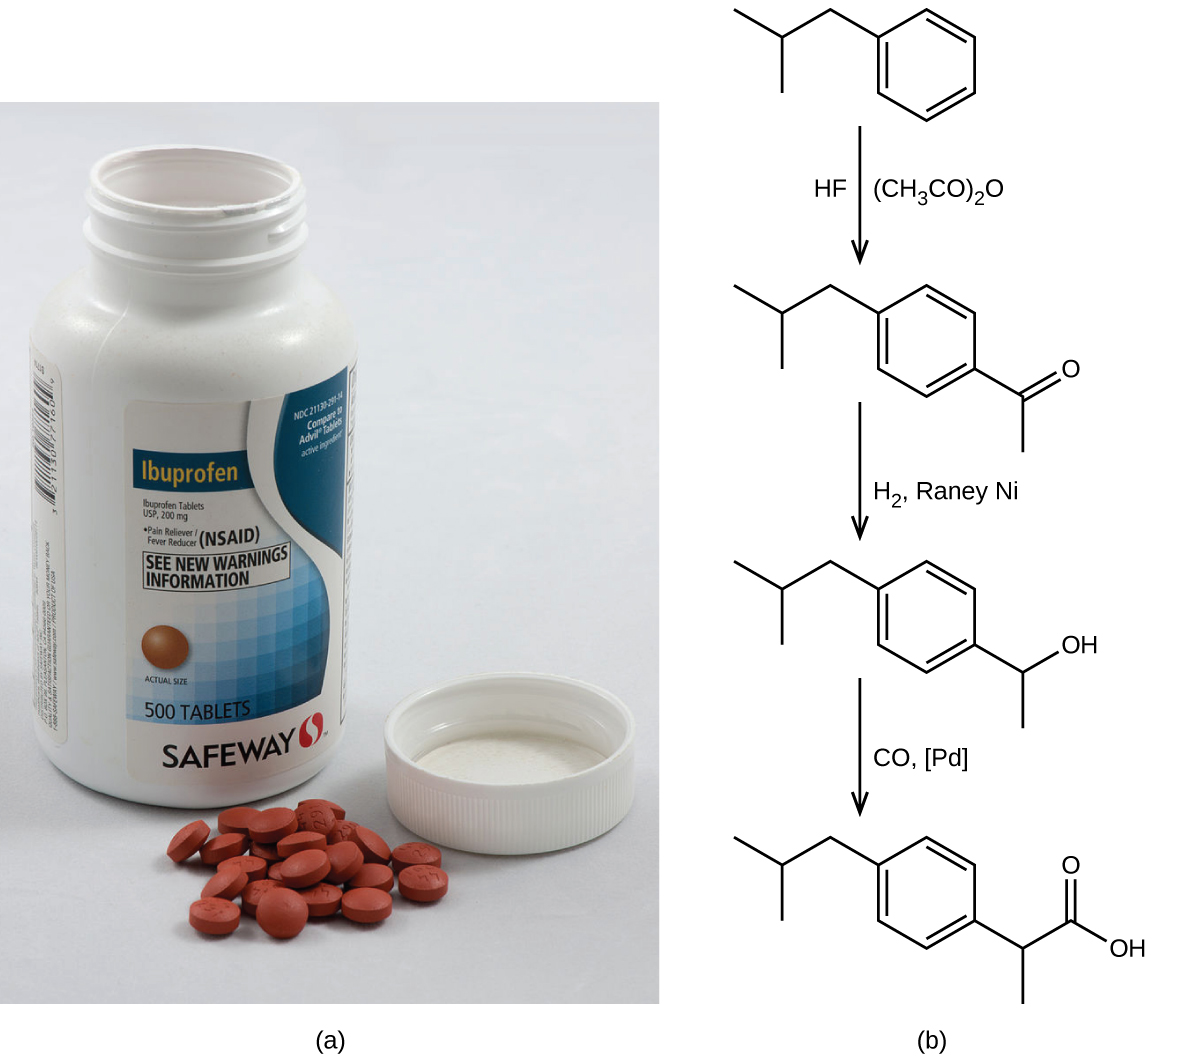 """This figure is labeled, """"a,"""" and, """"b."""" Part a shows an open bottle of ibuprofen and a small pile of ibuprofen tablets beside it. Part b shows a reaction along with line structures. The first line structure looks like a diagonal line pointing down and to the right, then up and to the right and then down and to the right. At this point it connects to a hexagon with alternating double bonds. At the first trough there is a line that points straight down. From this structure, there is an arrow pointing downward. The arrow is labeled, """"H F,"""" on the left and """"( C H subscript 3 C O ) subscript 2 O,"""" on the right. The next line structure looks exactly like the first line structure, but it has a line angled down and to the right from the lower right point of the hexagon. This line is connected to another line which points straight down. Where these two lines meet, there is a double bond to an O atom. There is another arrow pointing downward, and it is labeled, """"H subscript 2, Raney N i."""" The next structure looks very similar to the second, previous structure, except in place of the double bonded O, there is a singly bonded O H group. There is a final reaction arrow pointing downward, and it is labeled, """"C O, [ P d ]."""" The final structure is similar to the third, previous structure except in place of the O H group, there is another line that points down and to the right to an O H group. At these two lines, there is a double bonded O."""